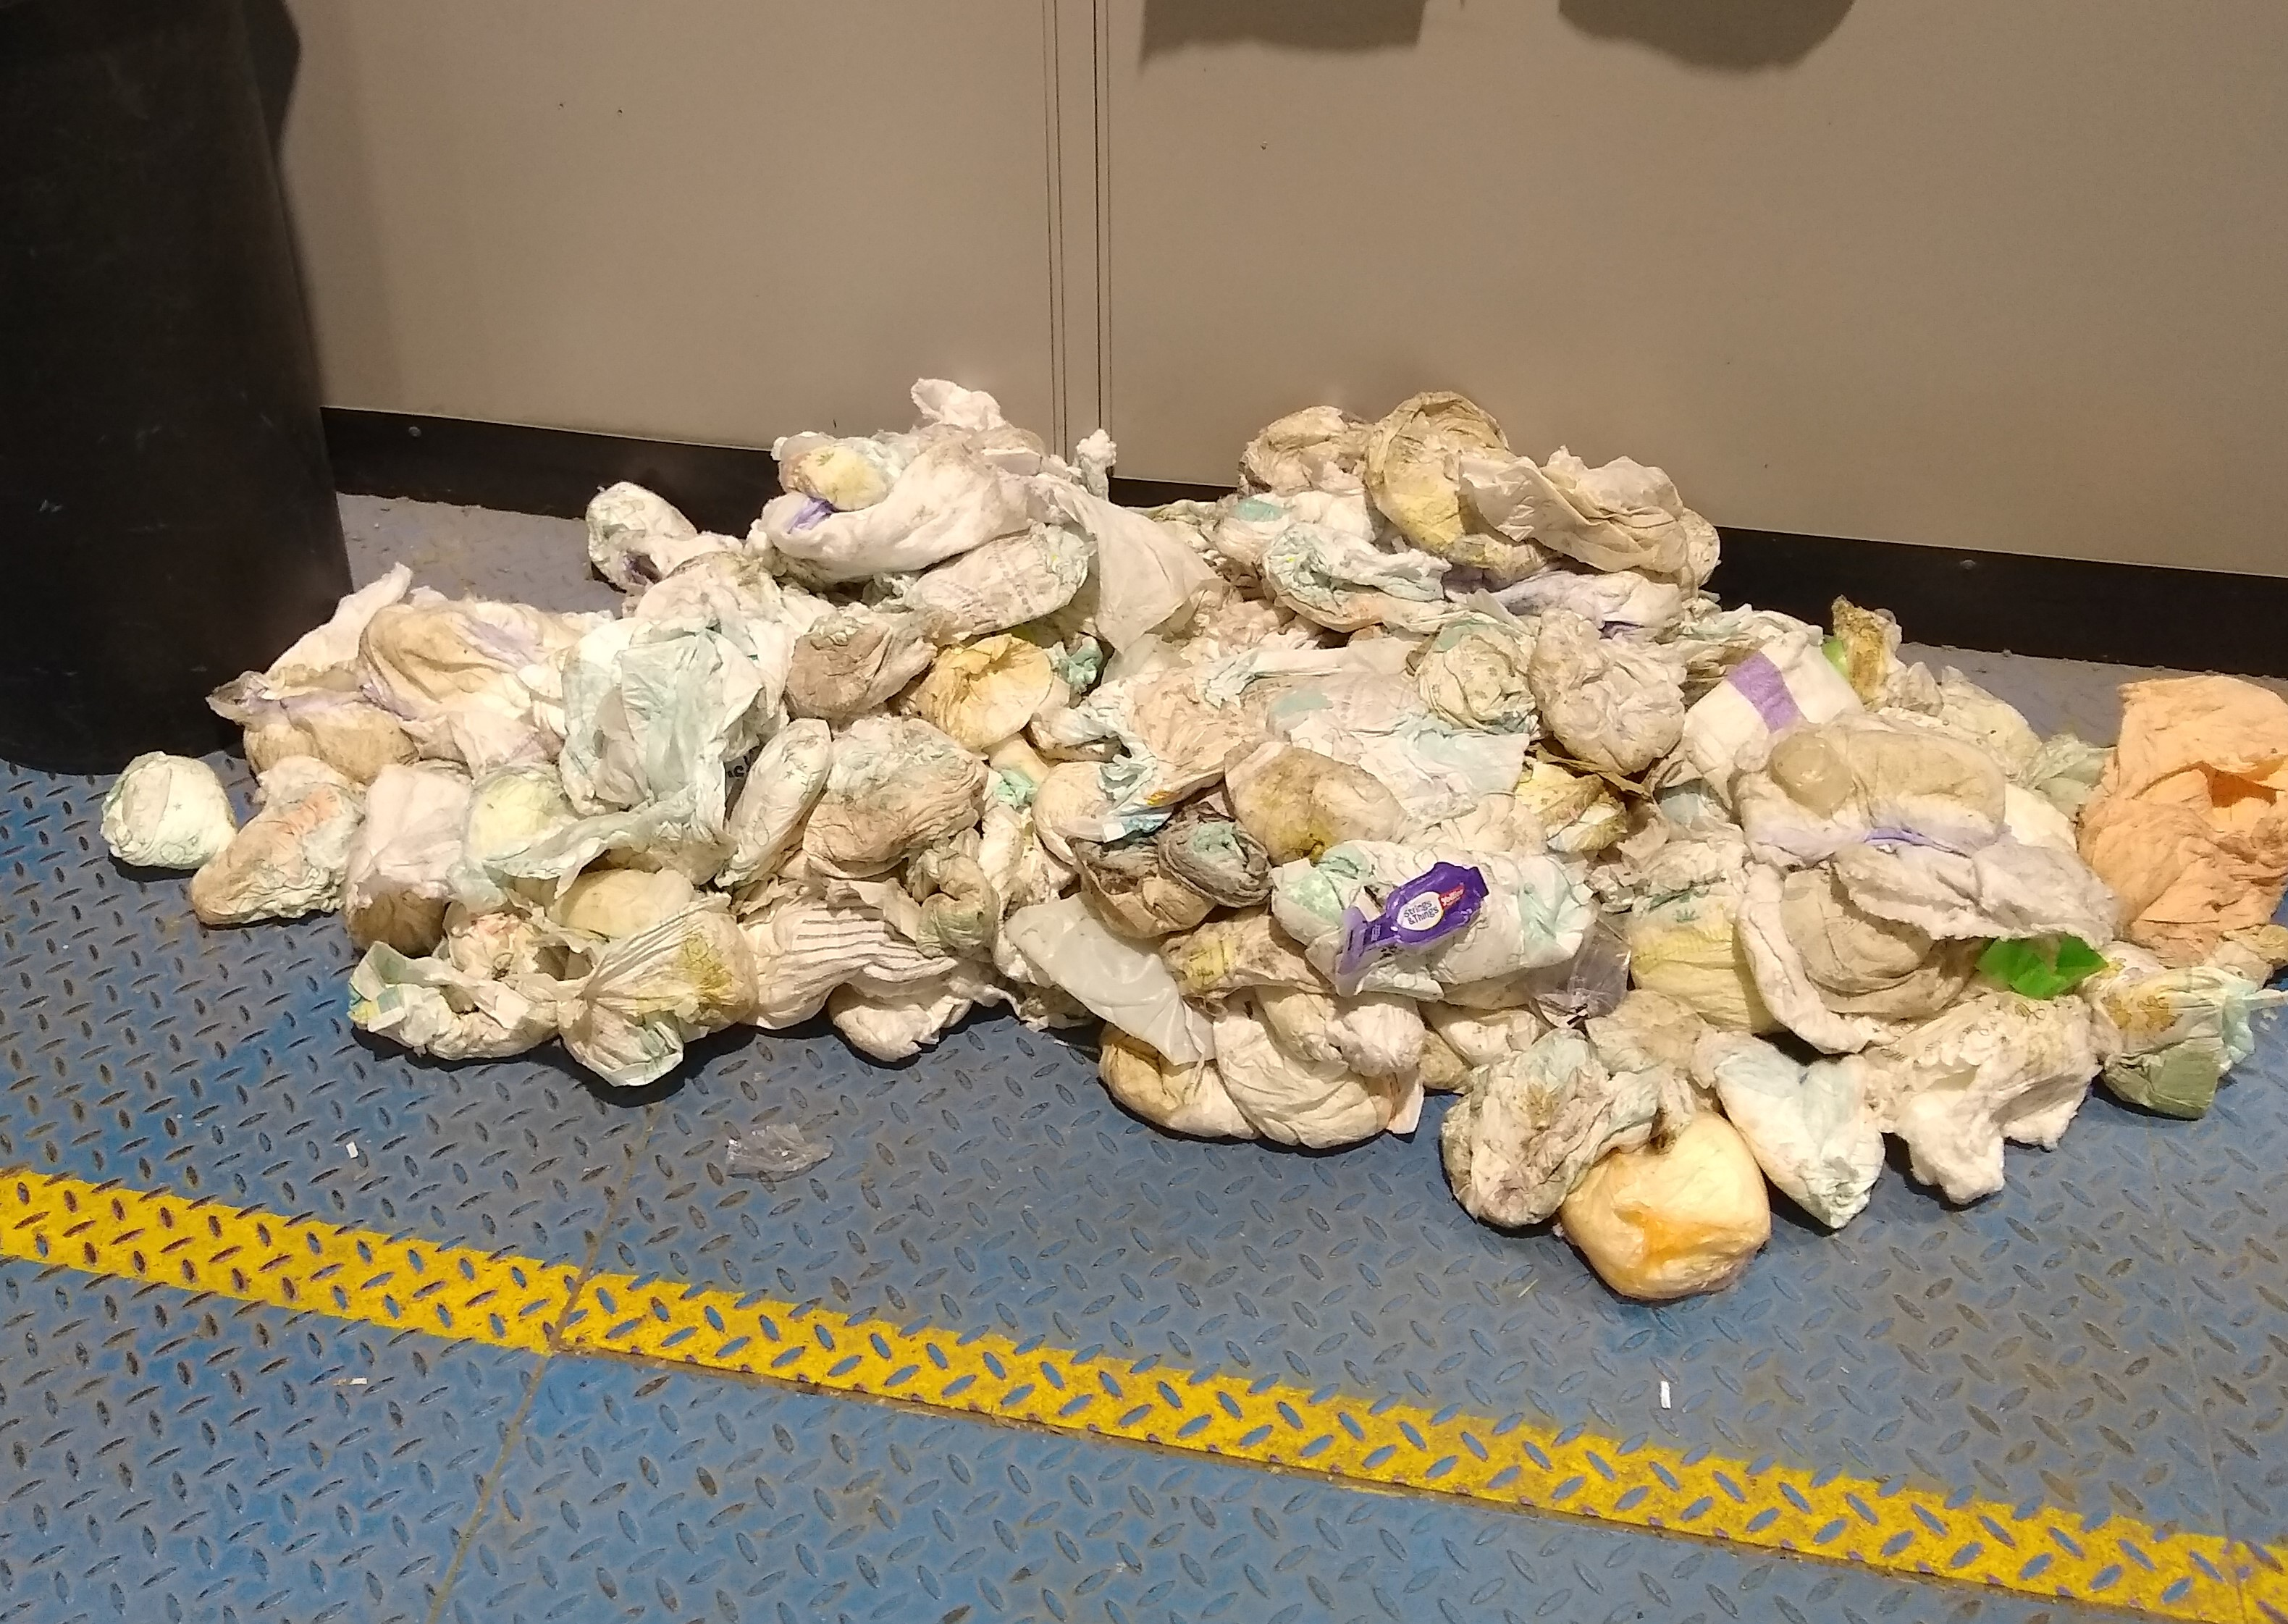 Photo taken at recycling plant of nappies pulled from the line in three hours